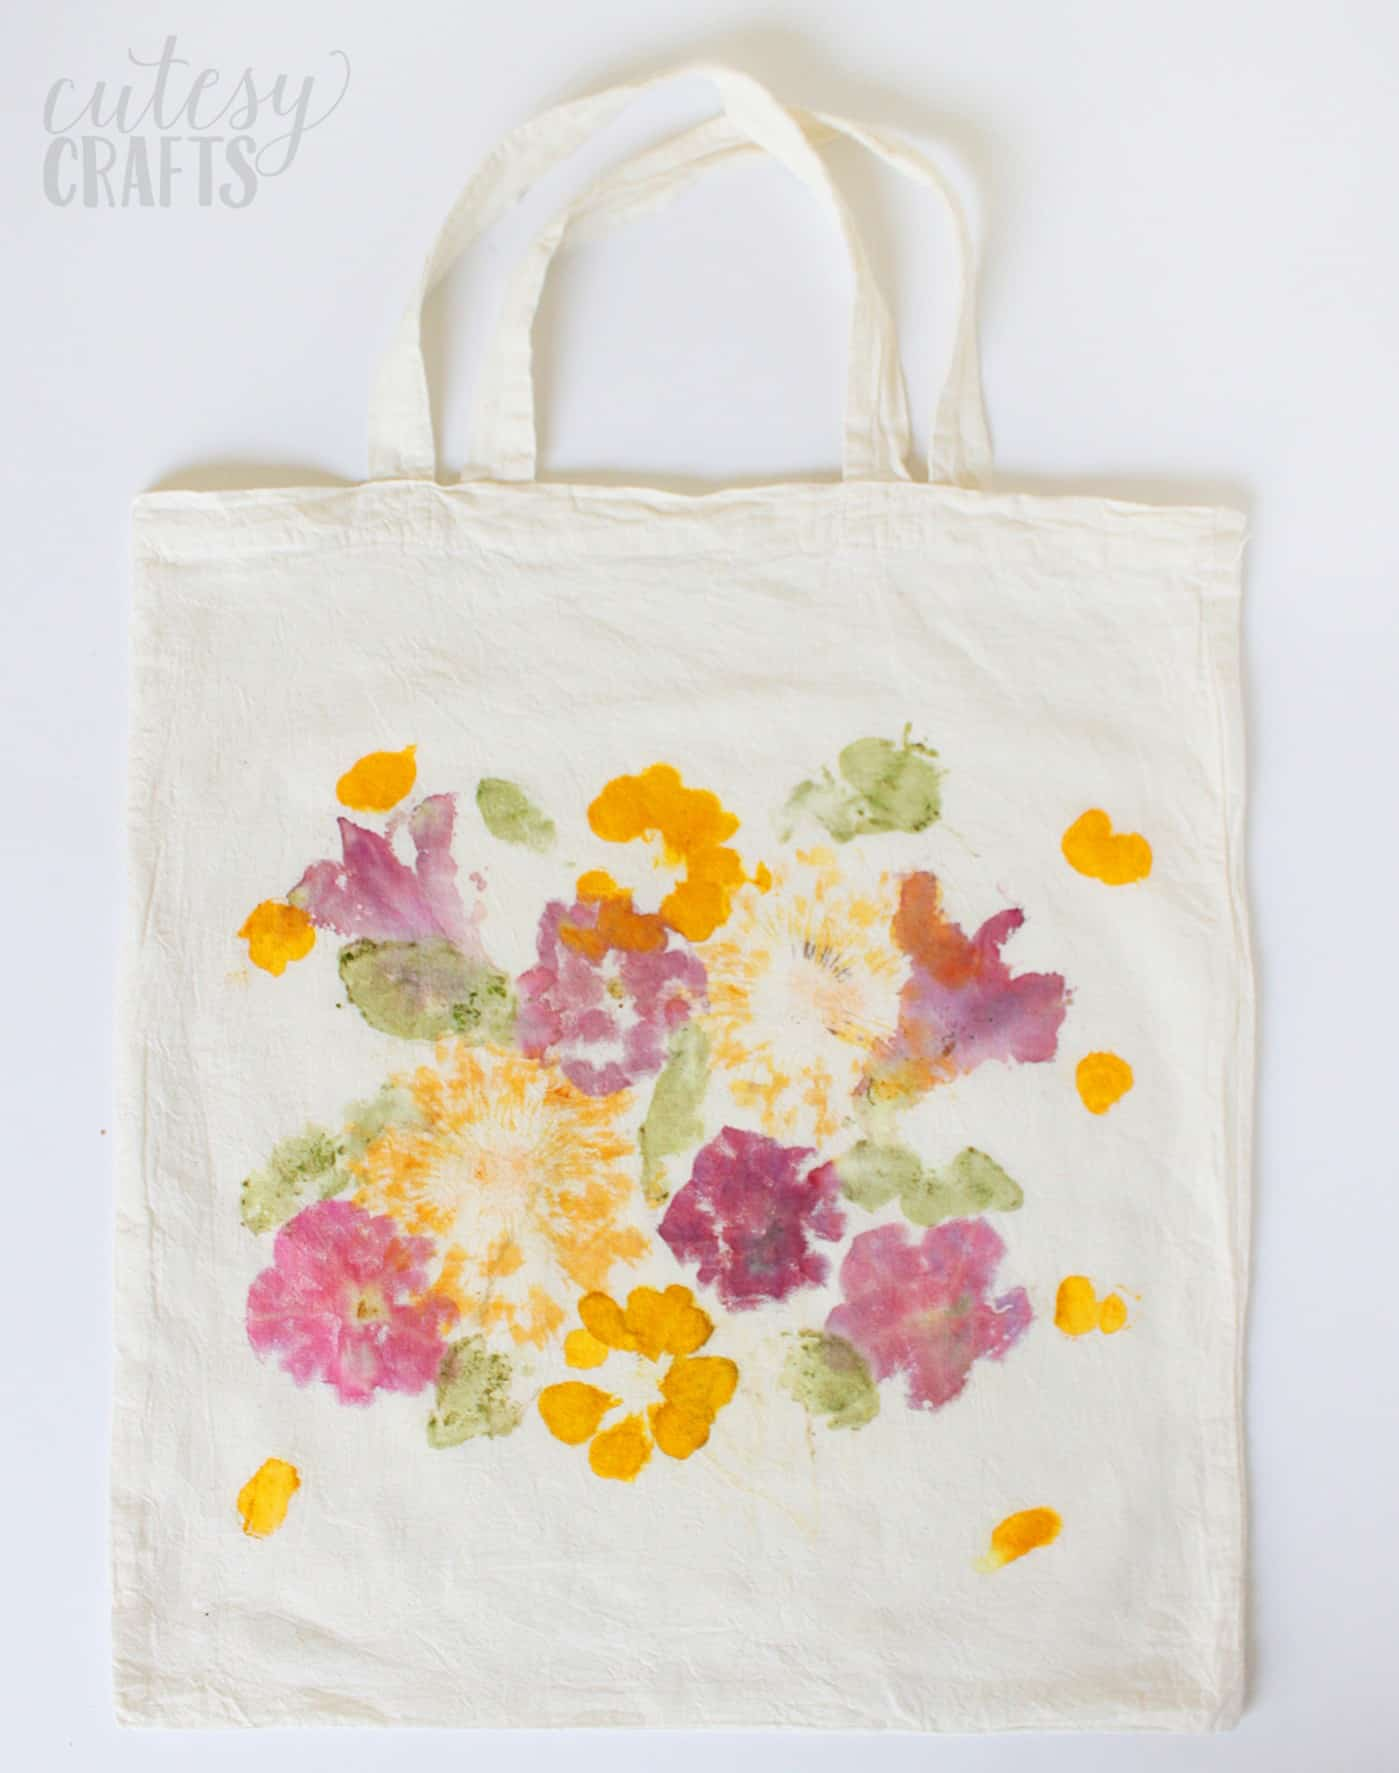 Decorate a bag with flower pounding